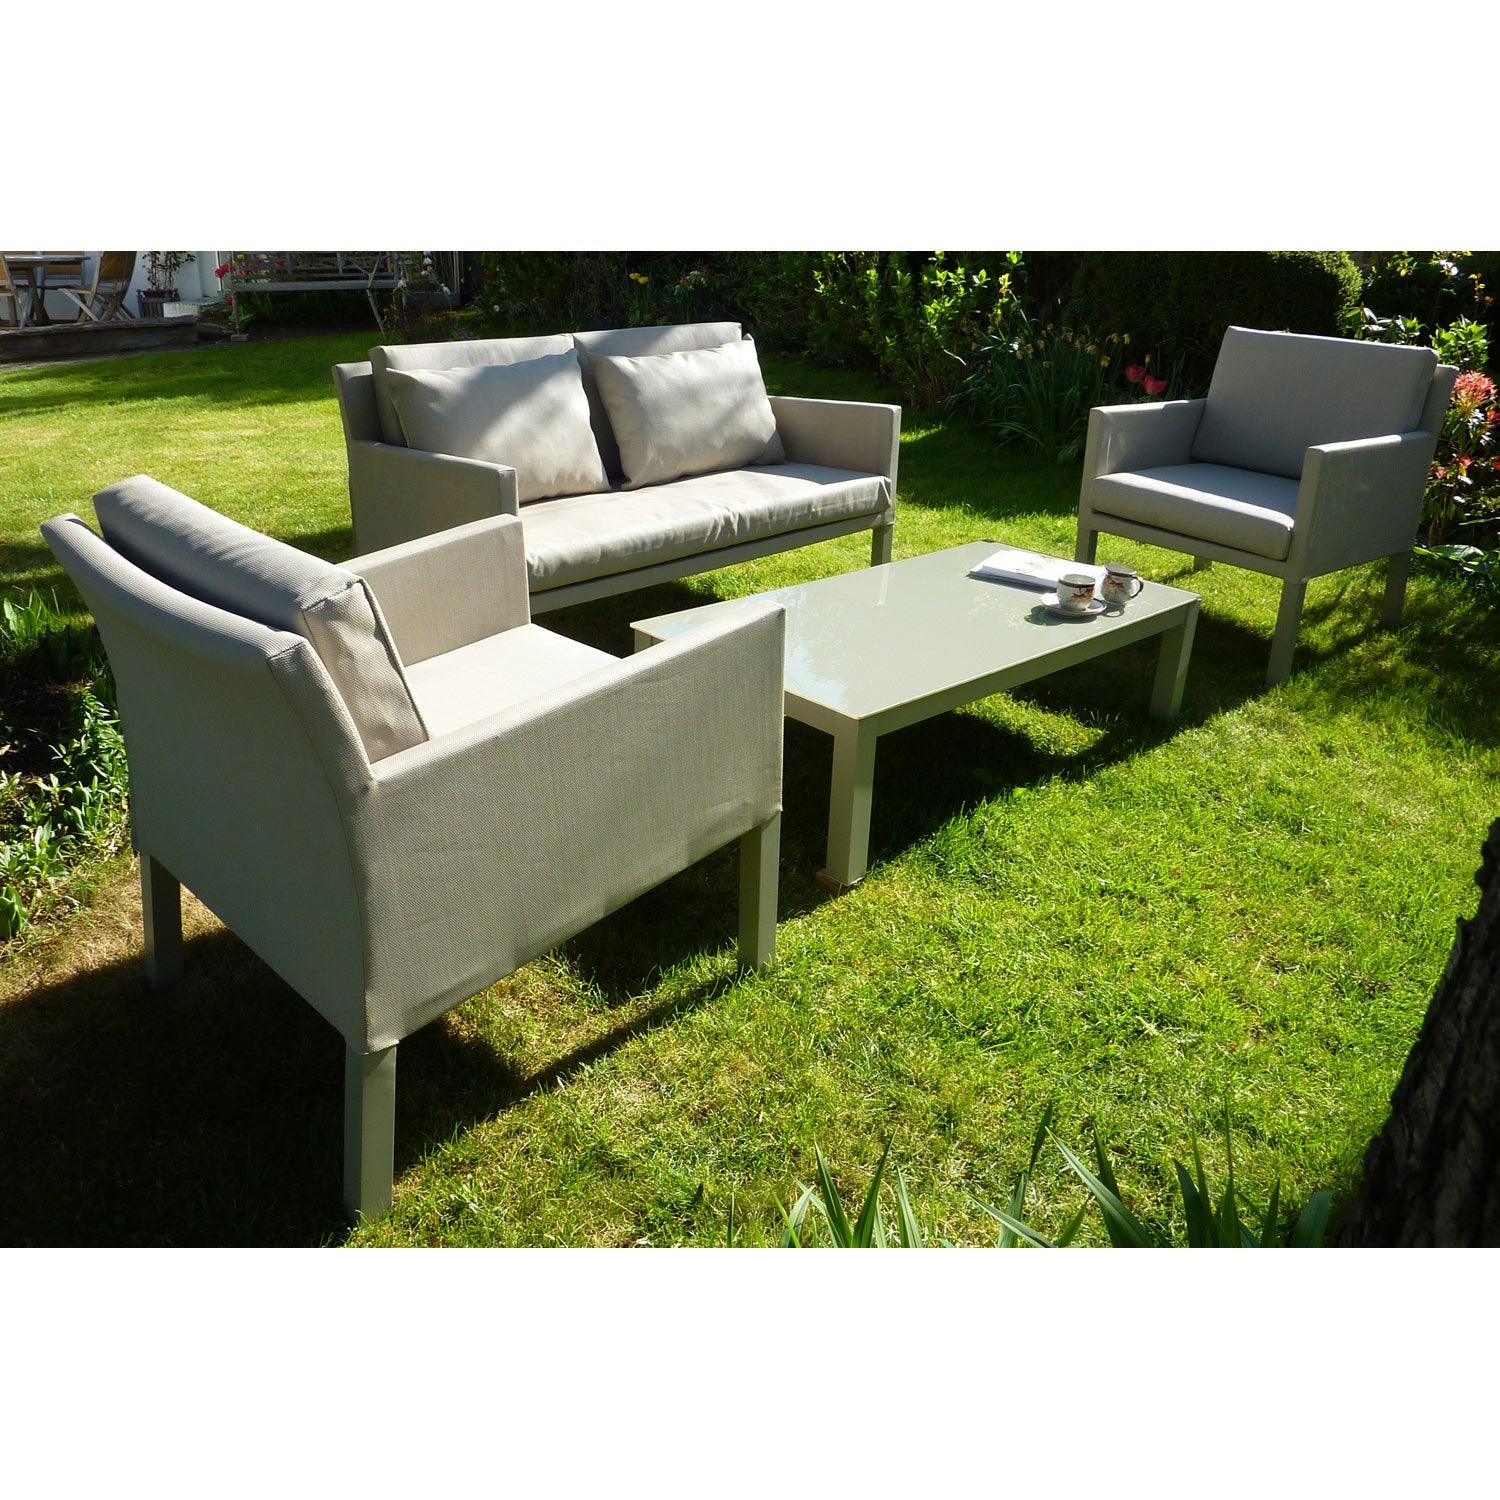 Salon jardin alu leroy merlin - Leroy merlin table jardin ...